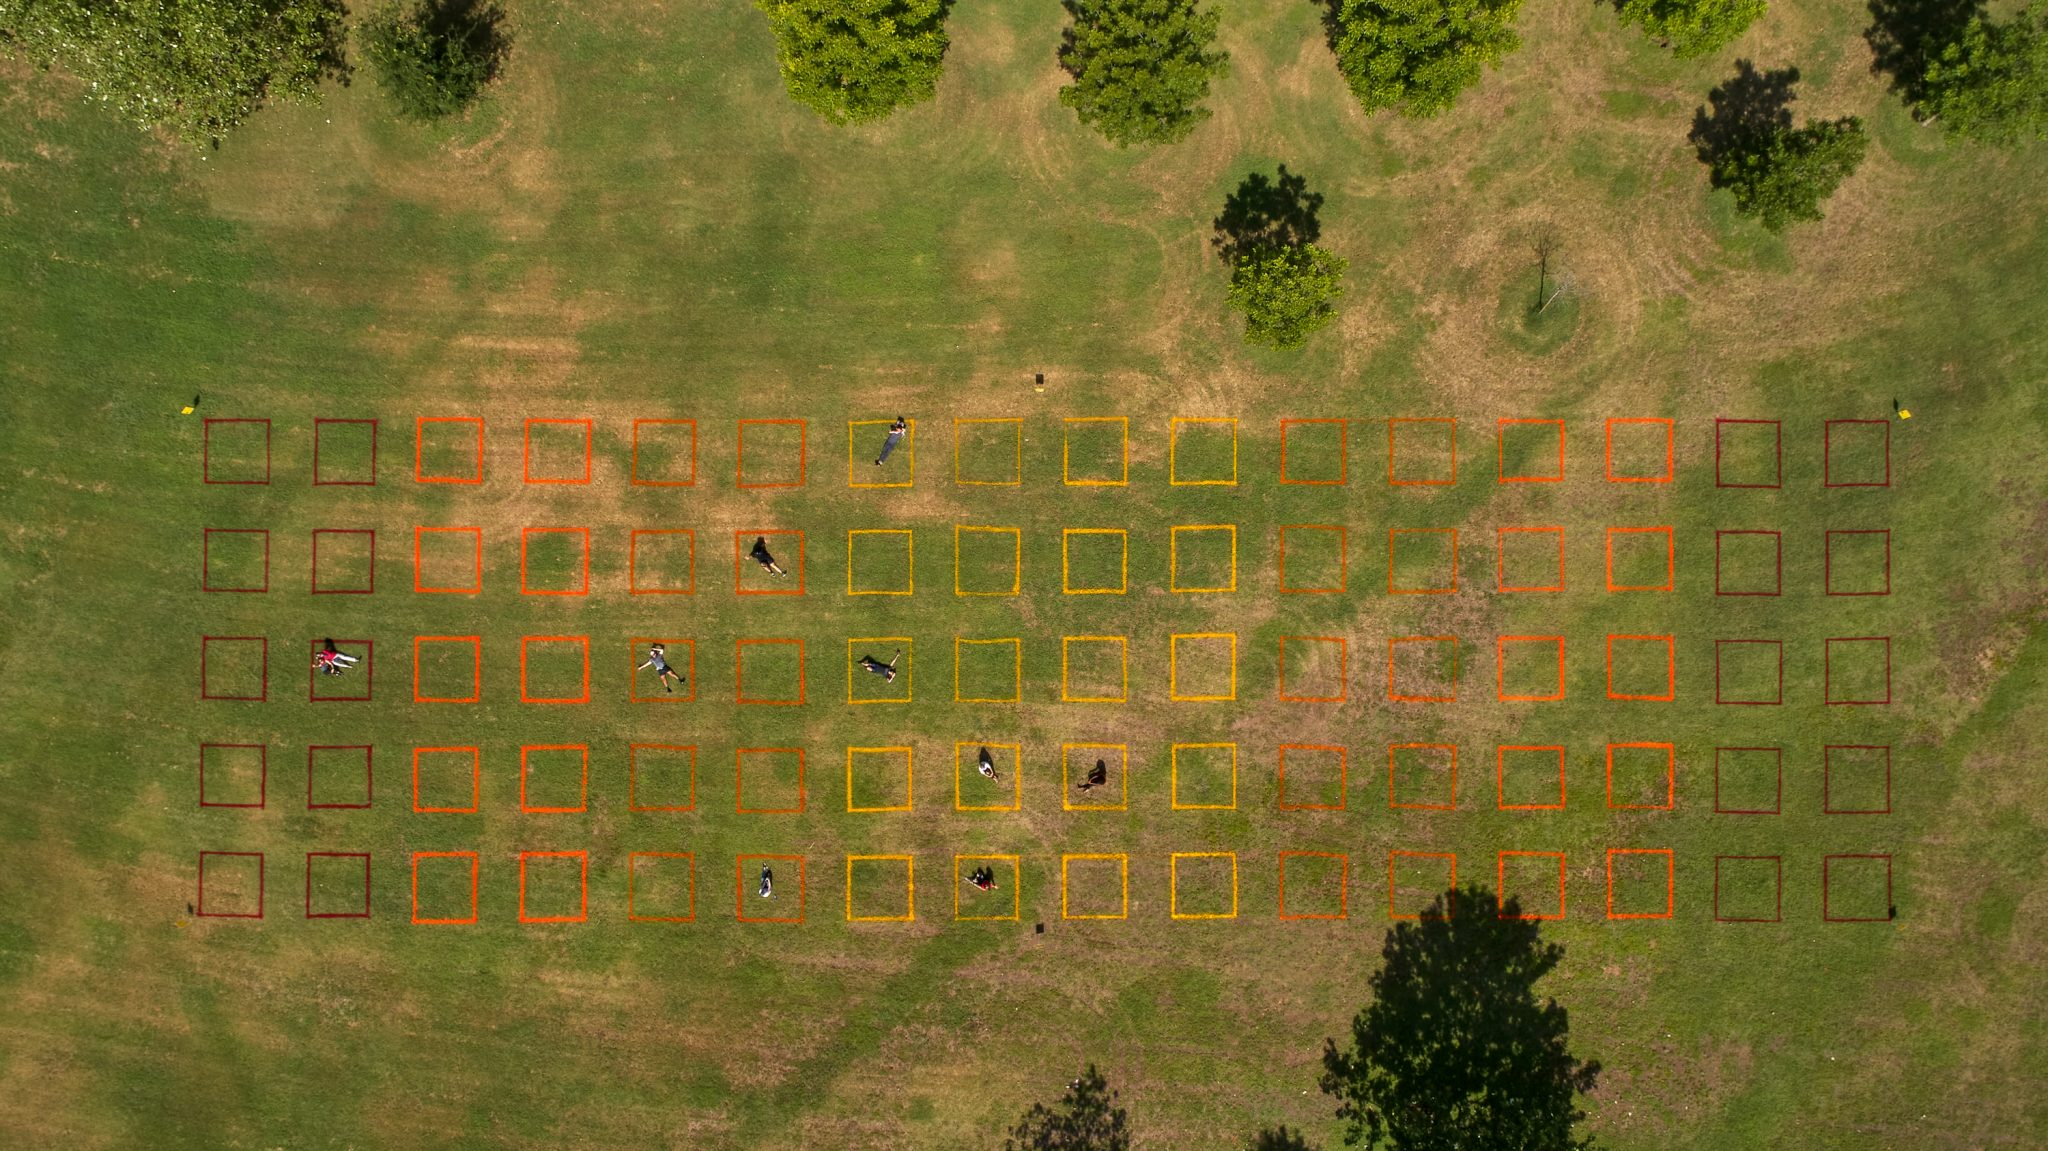 Overhead view of the P A R K S P A C E grid at Roy G Guerrero Park in East Austin. Photo by Ryan Conway, courtesy Gensler and Austin Foundation for Architecture